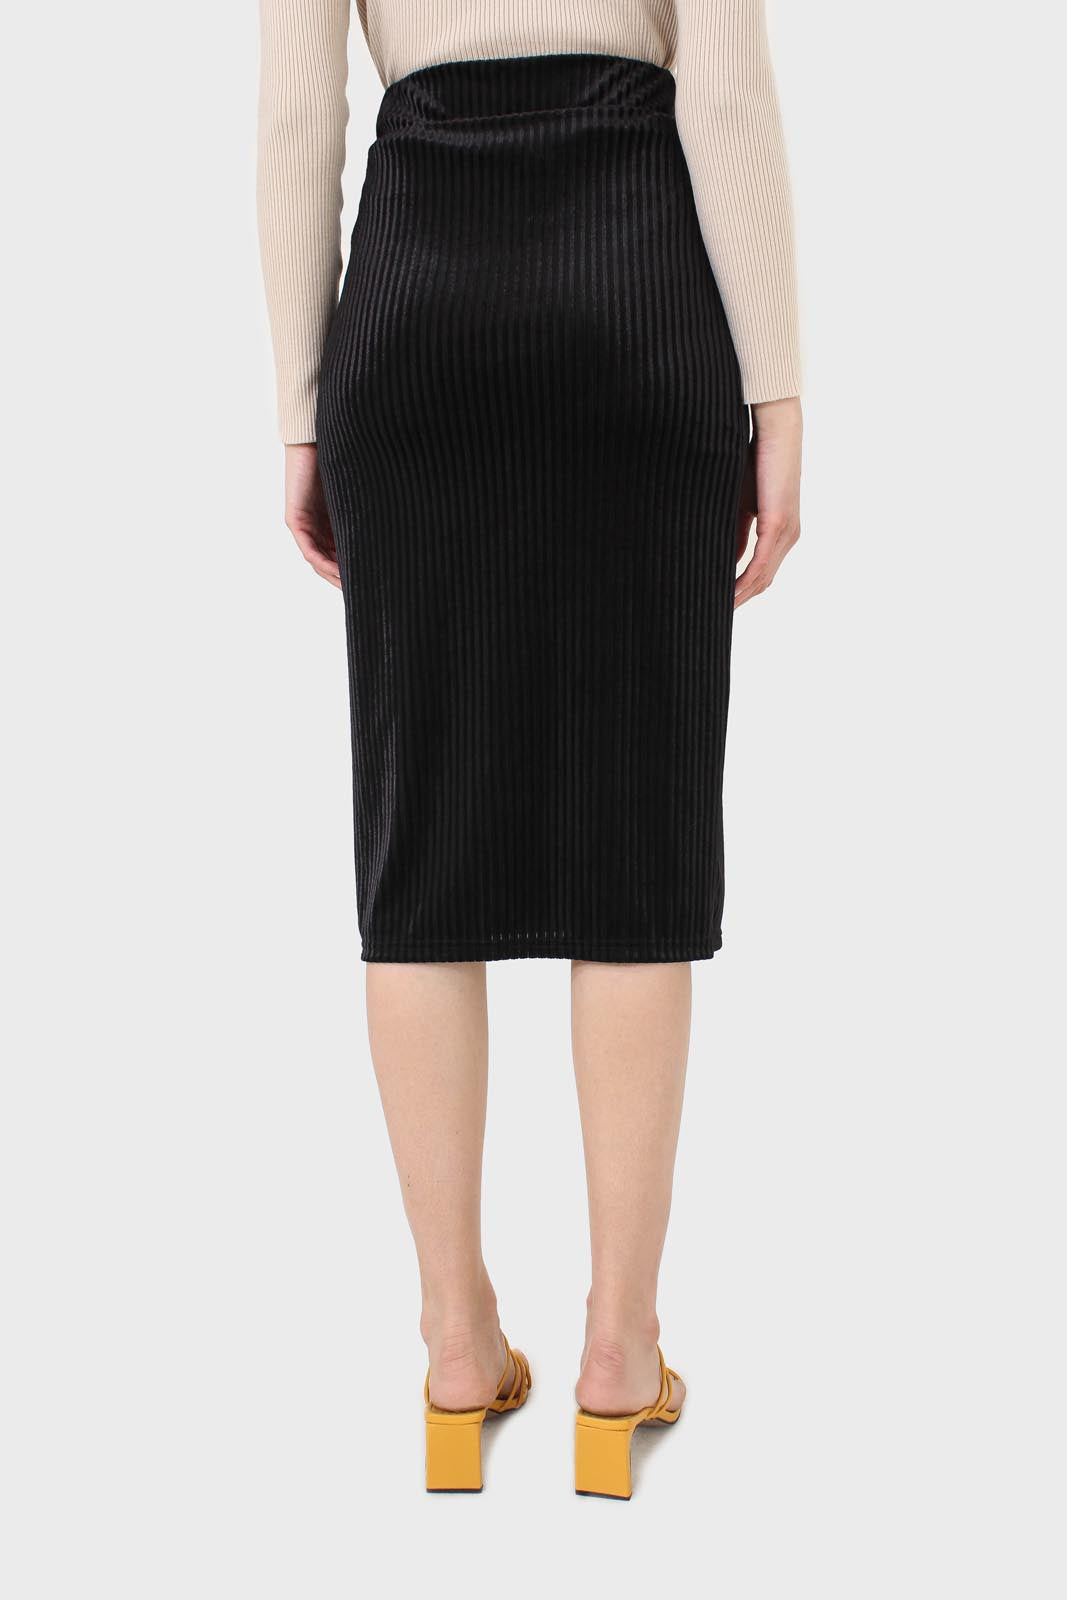 Black ribbed velvet pencil skirt2